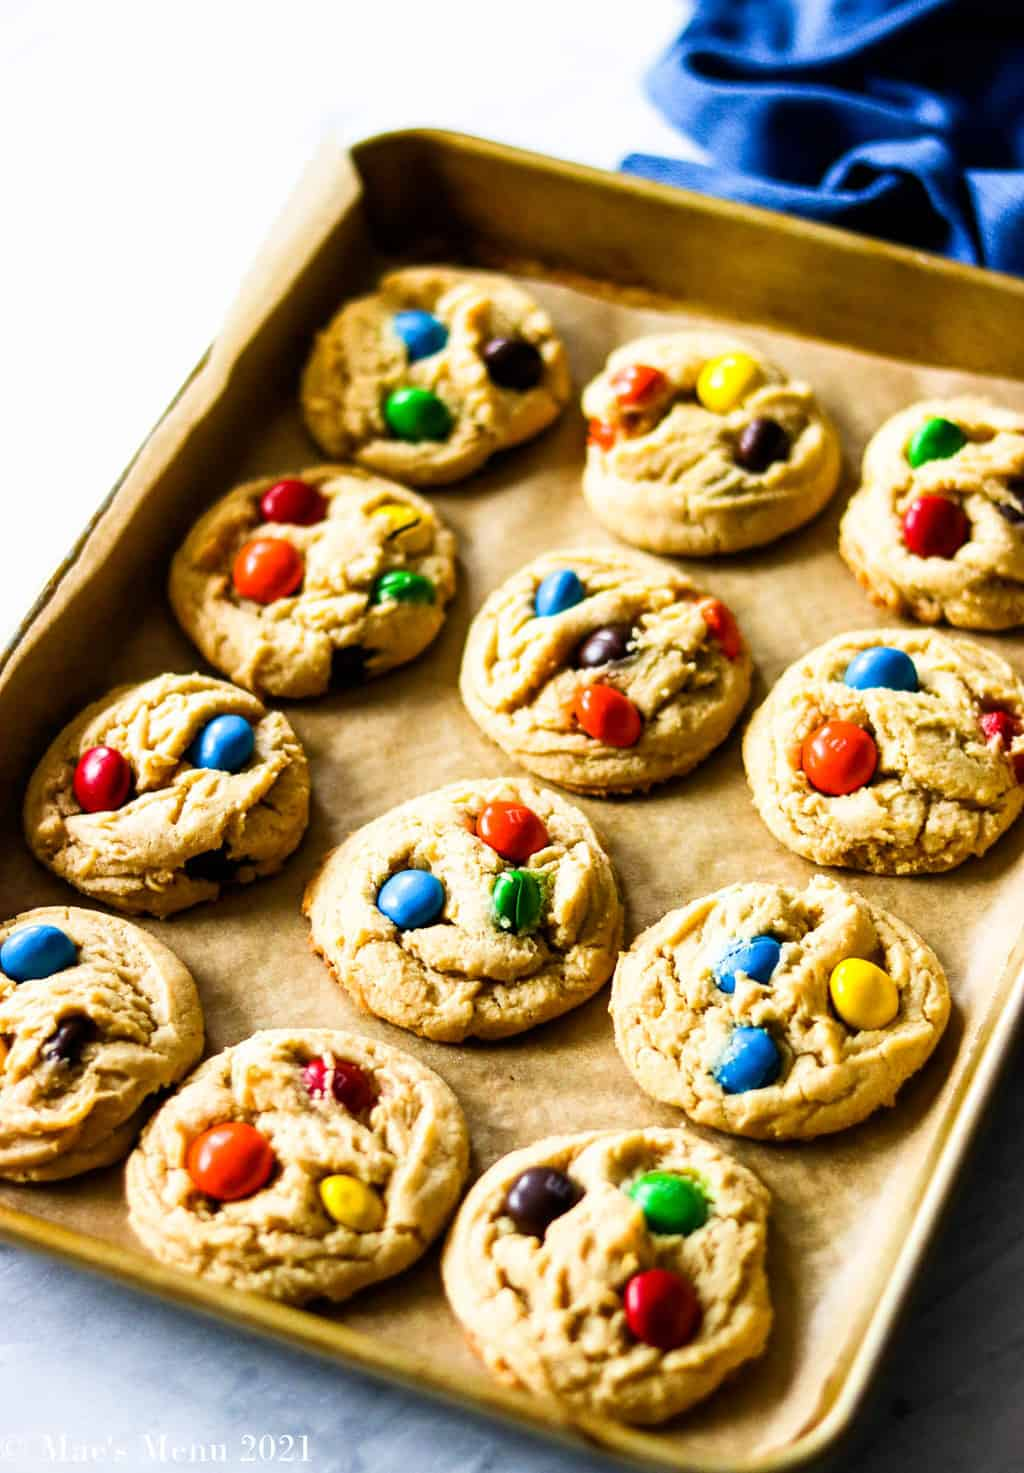 A tray of peanut butter M&M cookies with a blue towel in the background